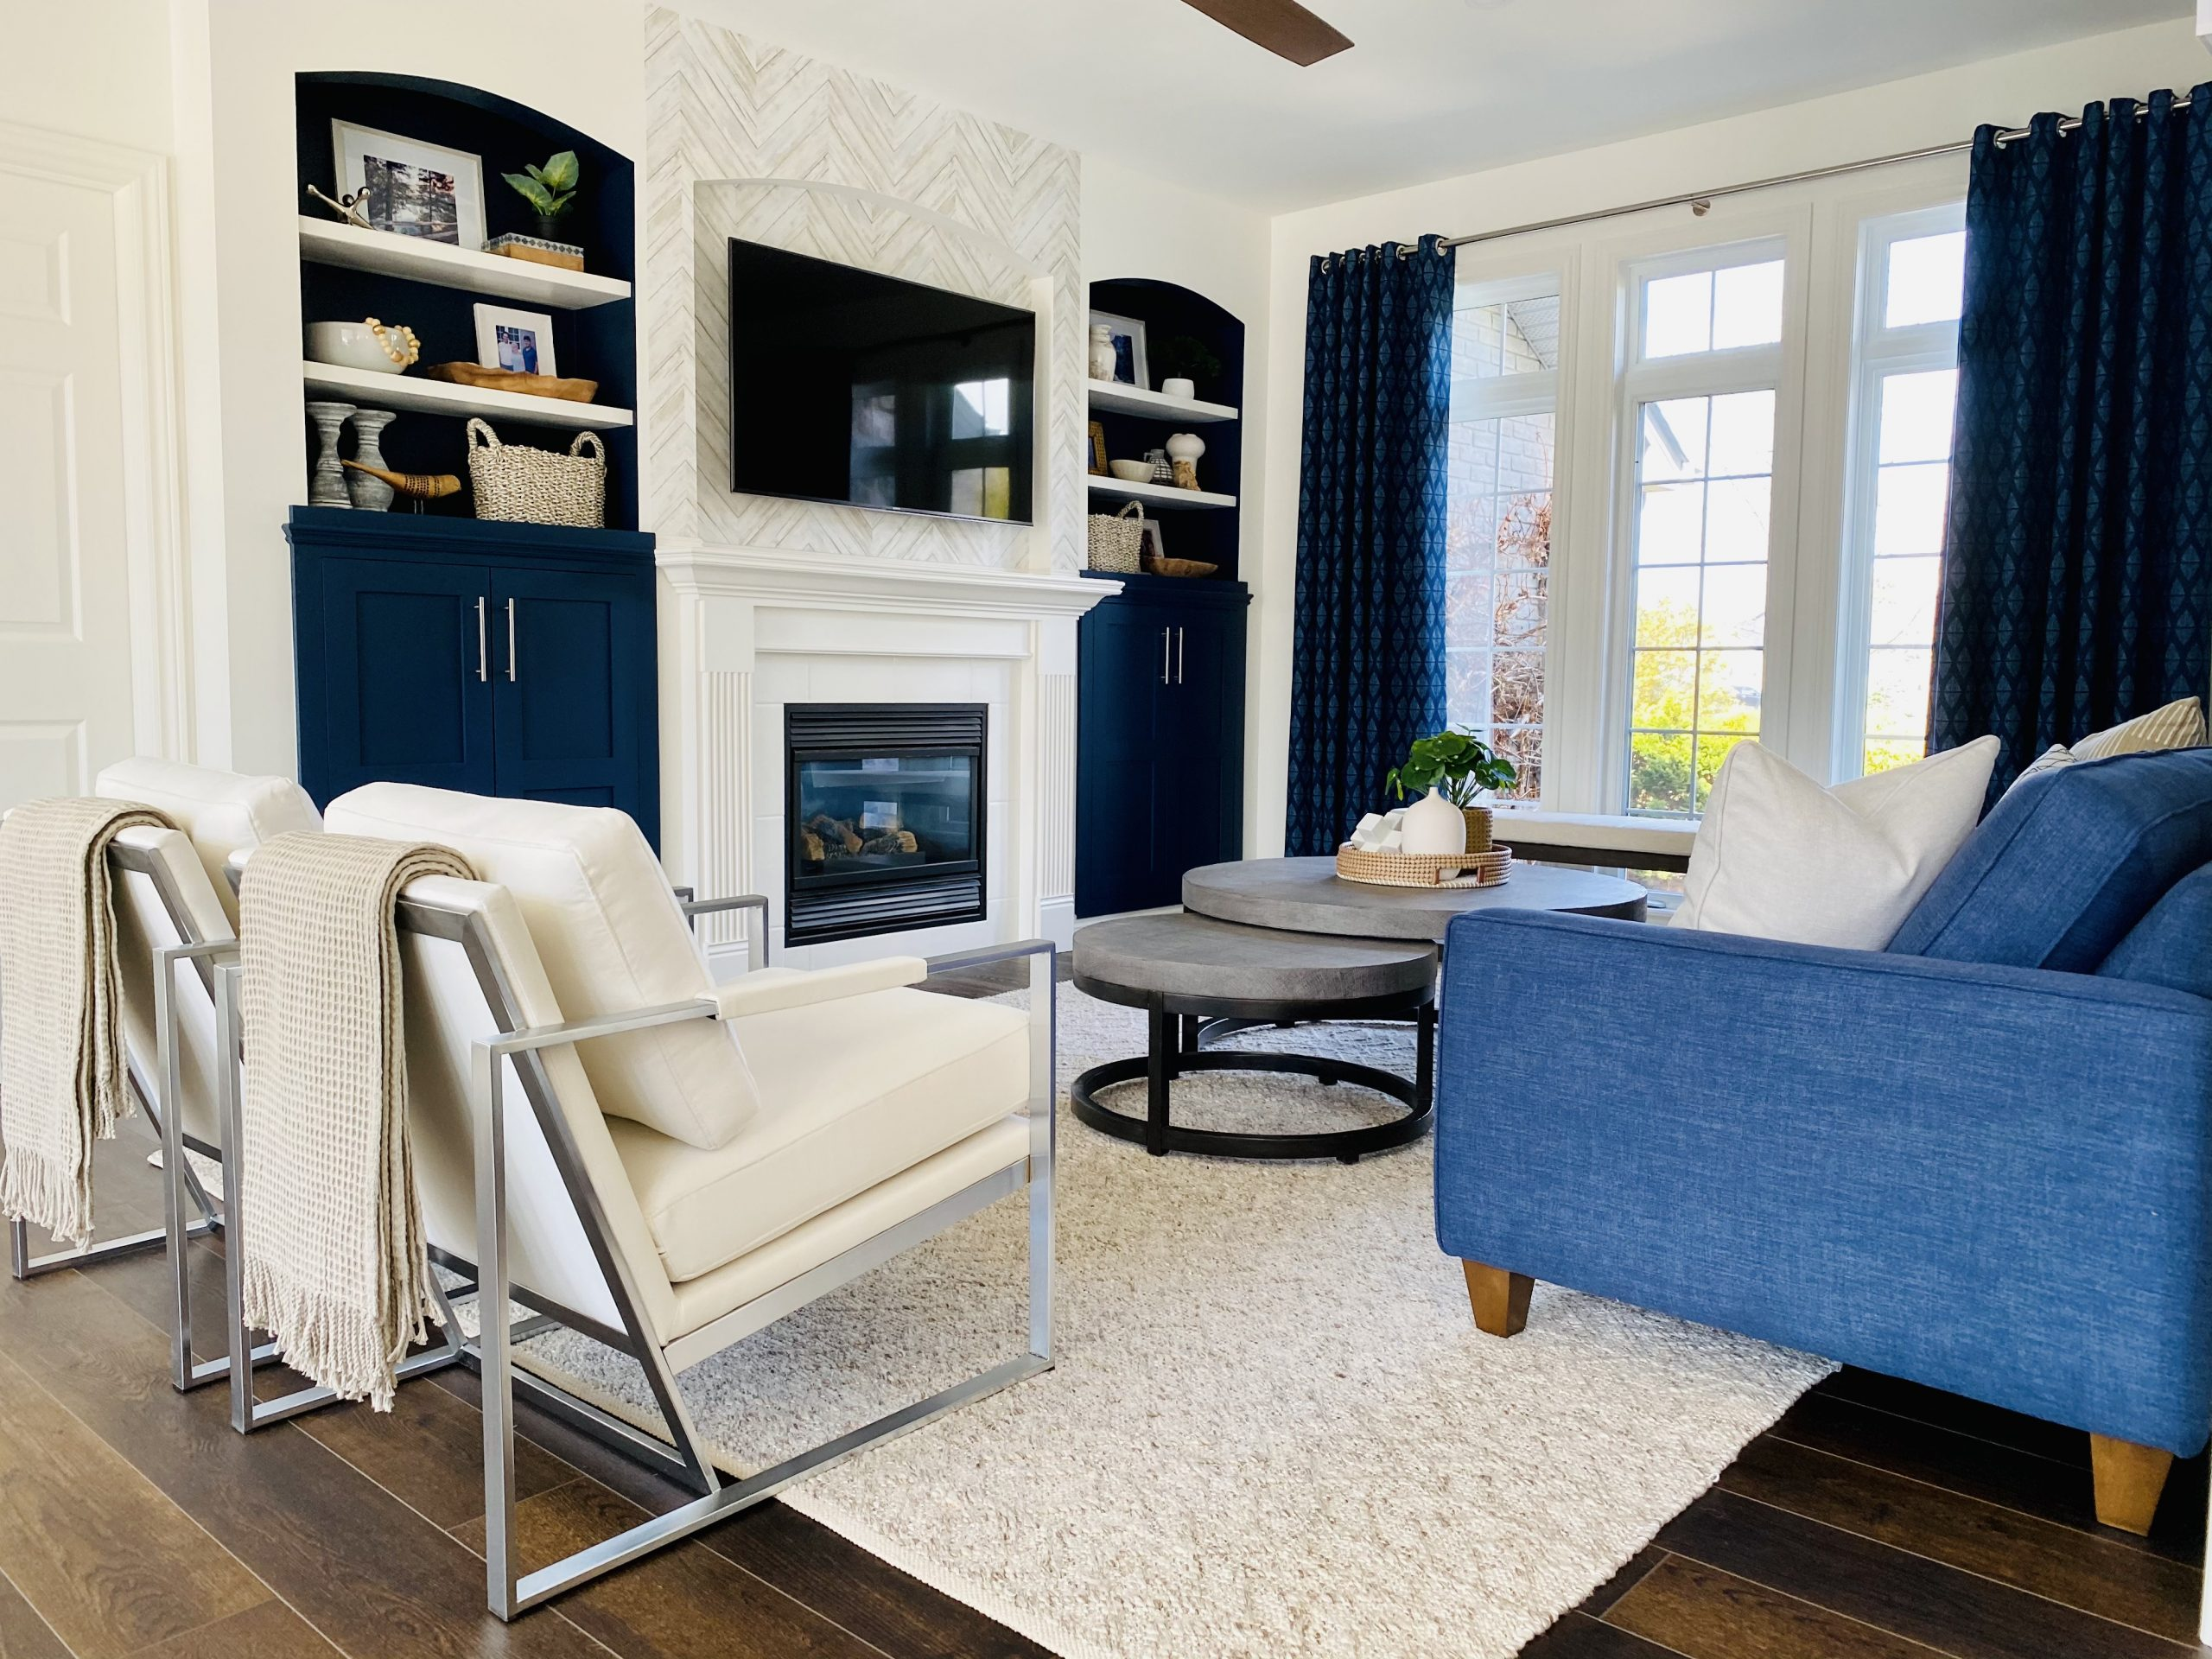 Colourful transitional living room remodel by an interior designer in Chatham-Kent Ontario